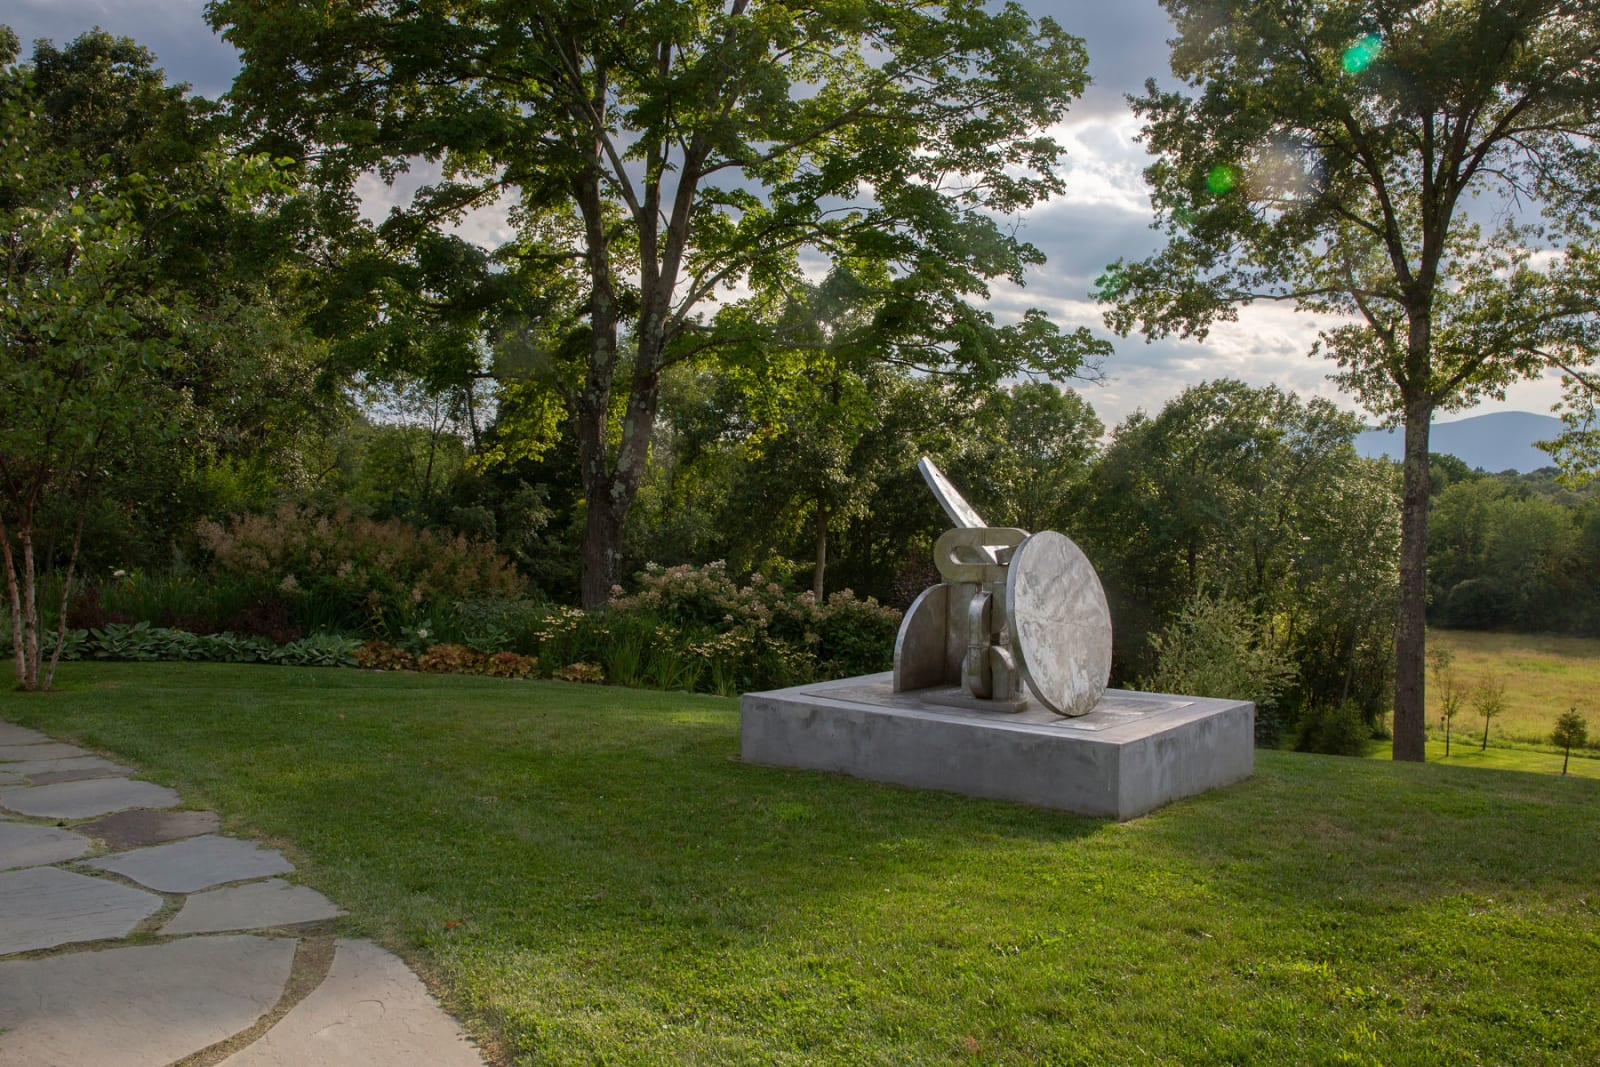 """<div class=""""additional_caption"""">'Untitled', 1993. Stainless steel, 148.6 x 198 x 122cm(58 1/2 x 78 x 48 1/8in)</div>"""